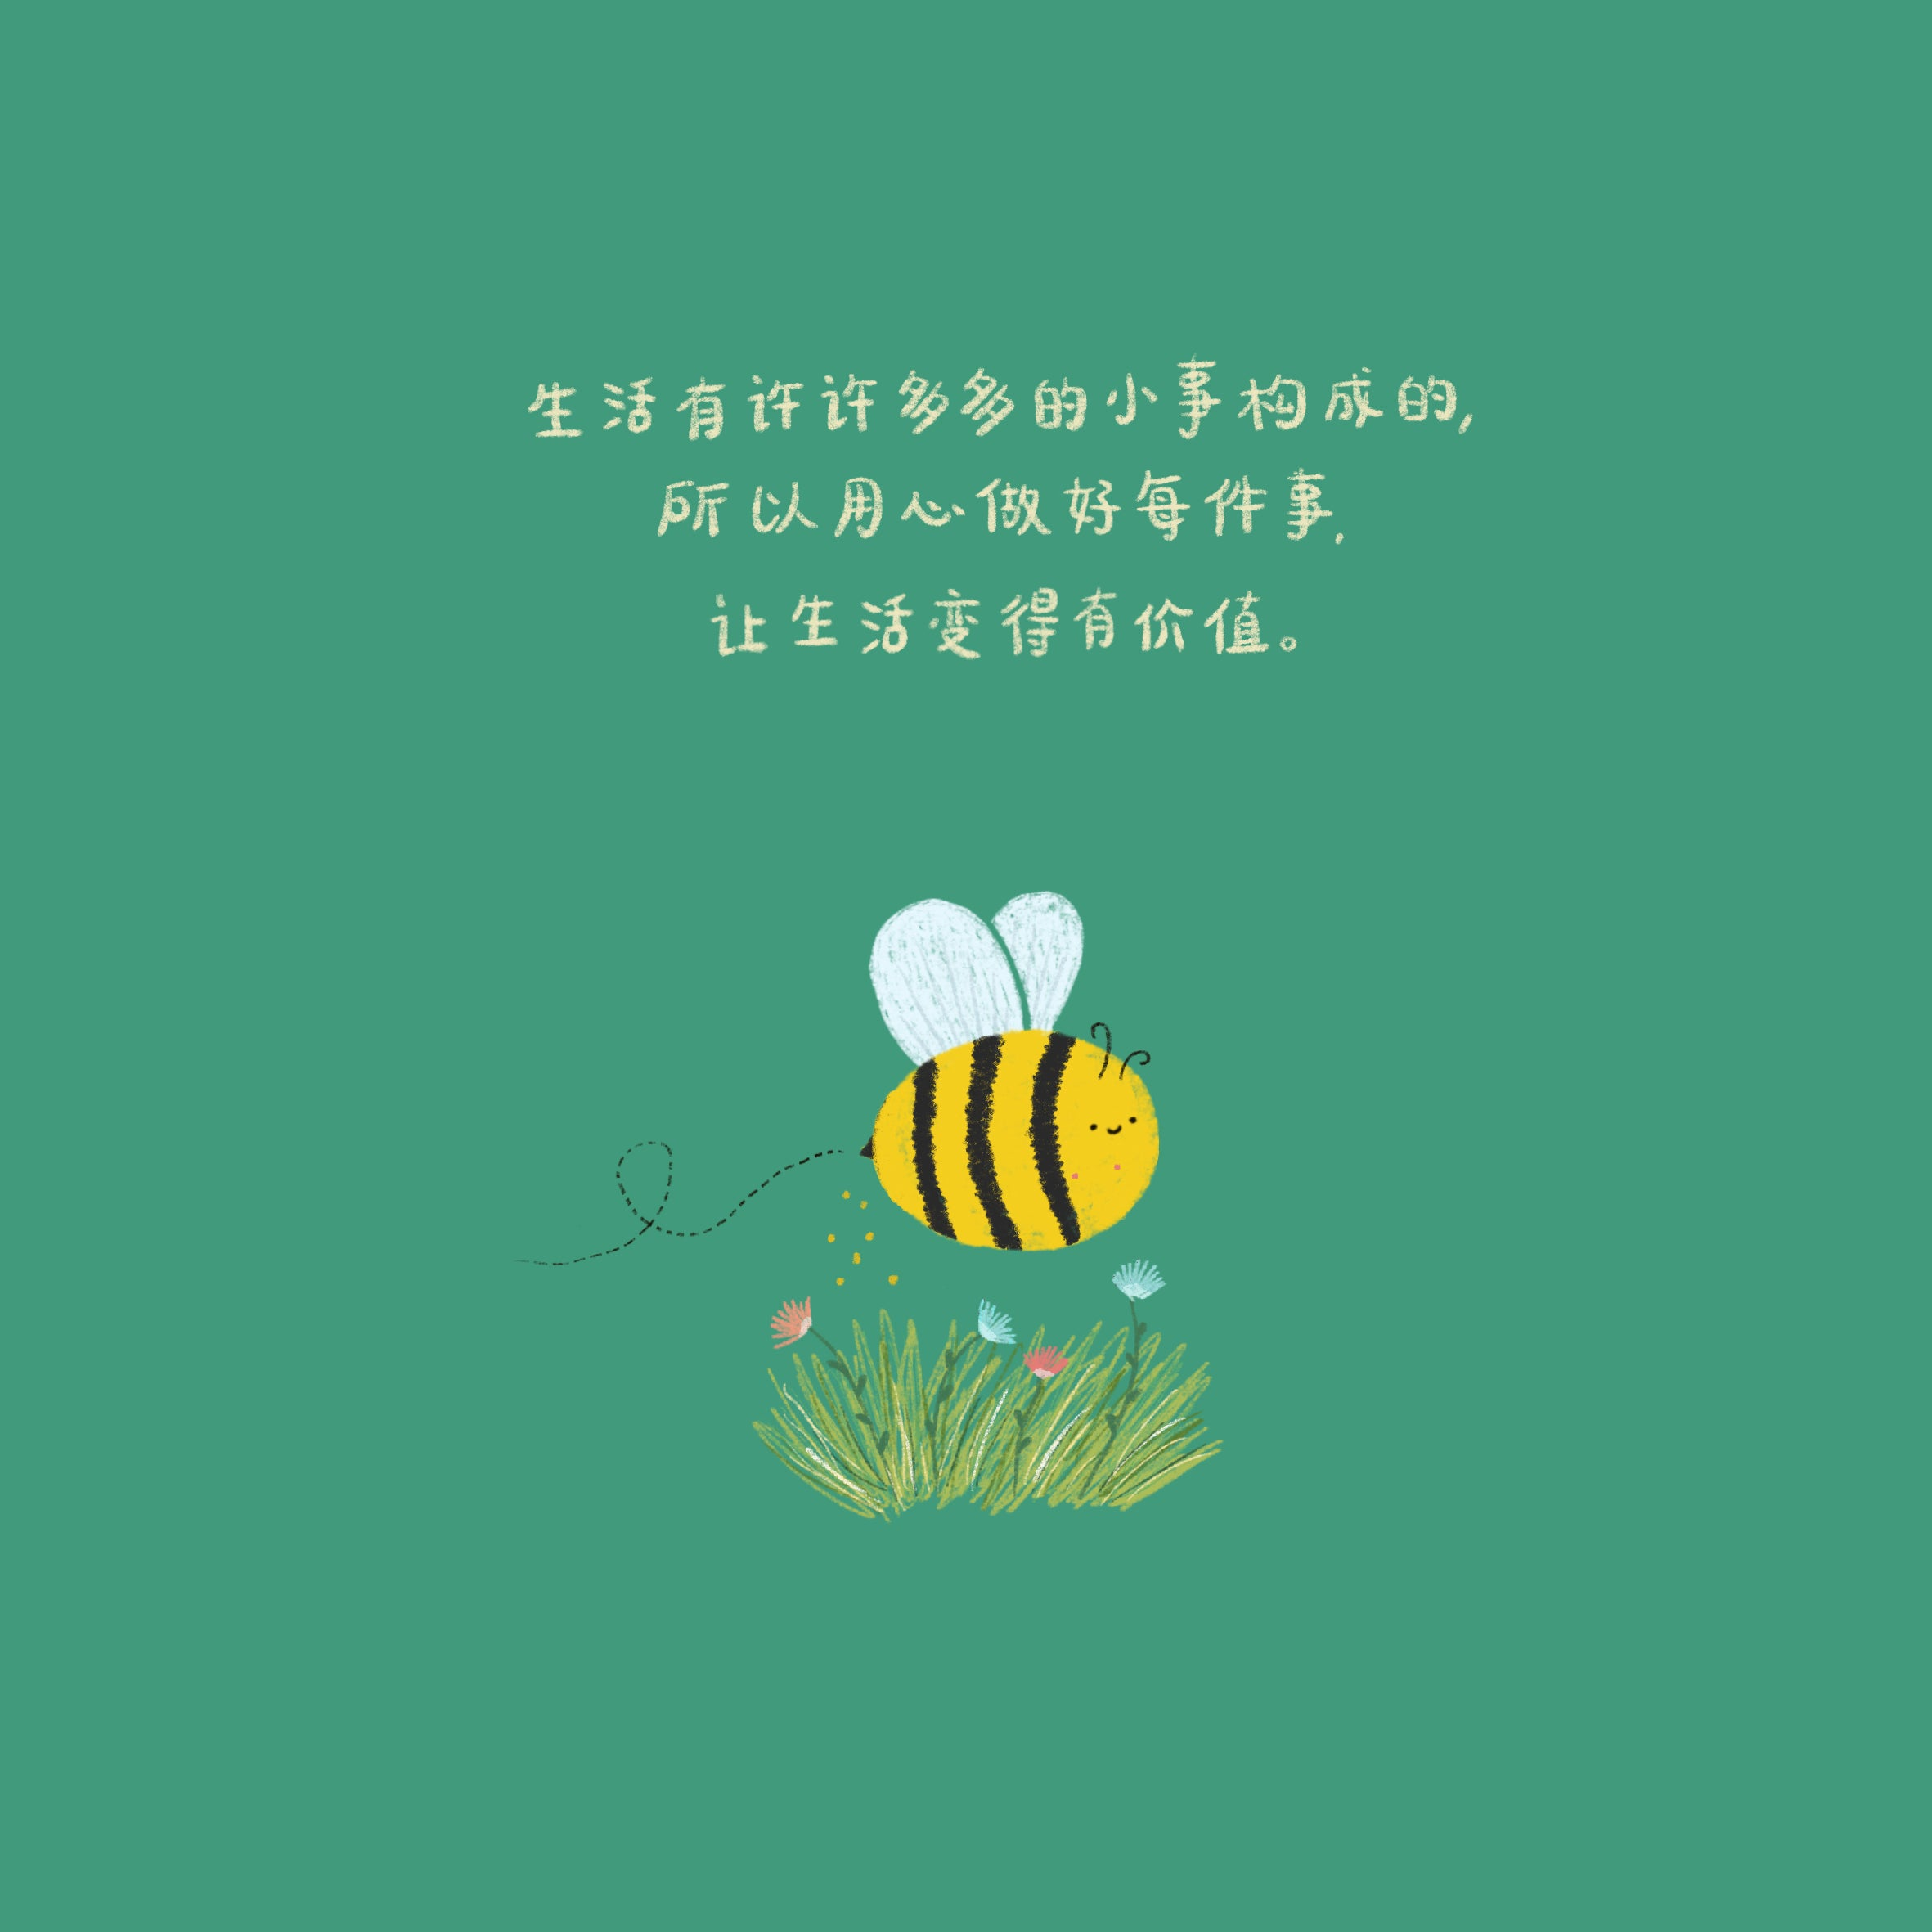 digital illustration of a chinese motivational saying about focusing in life and doing the best you can along with a bee hovering above a bunch of flowers